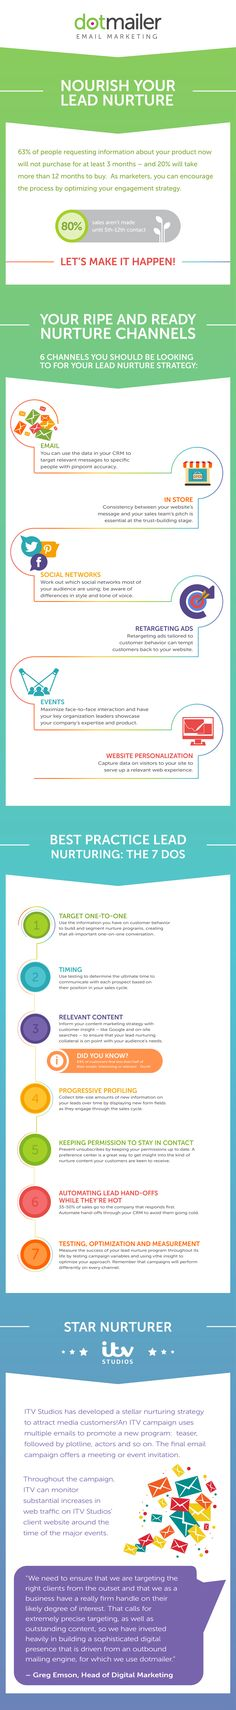 I've seen this guide created by dotmailer called Infographic: Lead Nurture Infographic. Get yourself a free copy http://bit.ly/2lmD7ce.